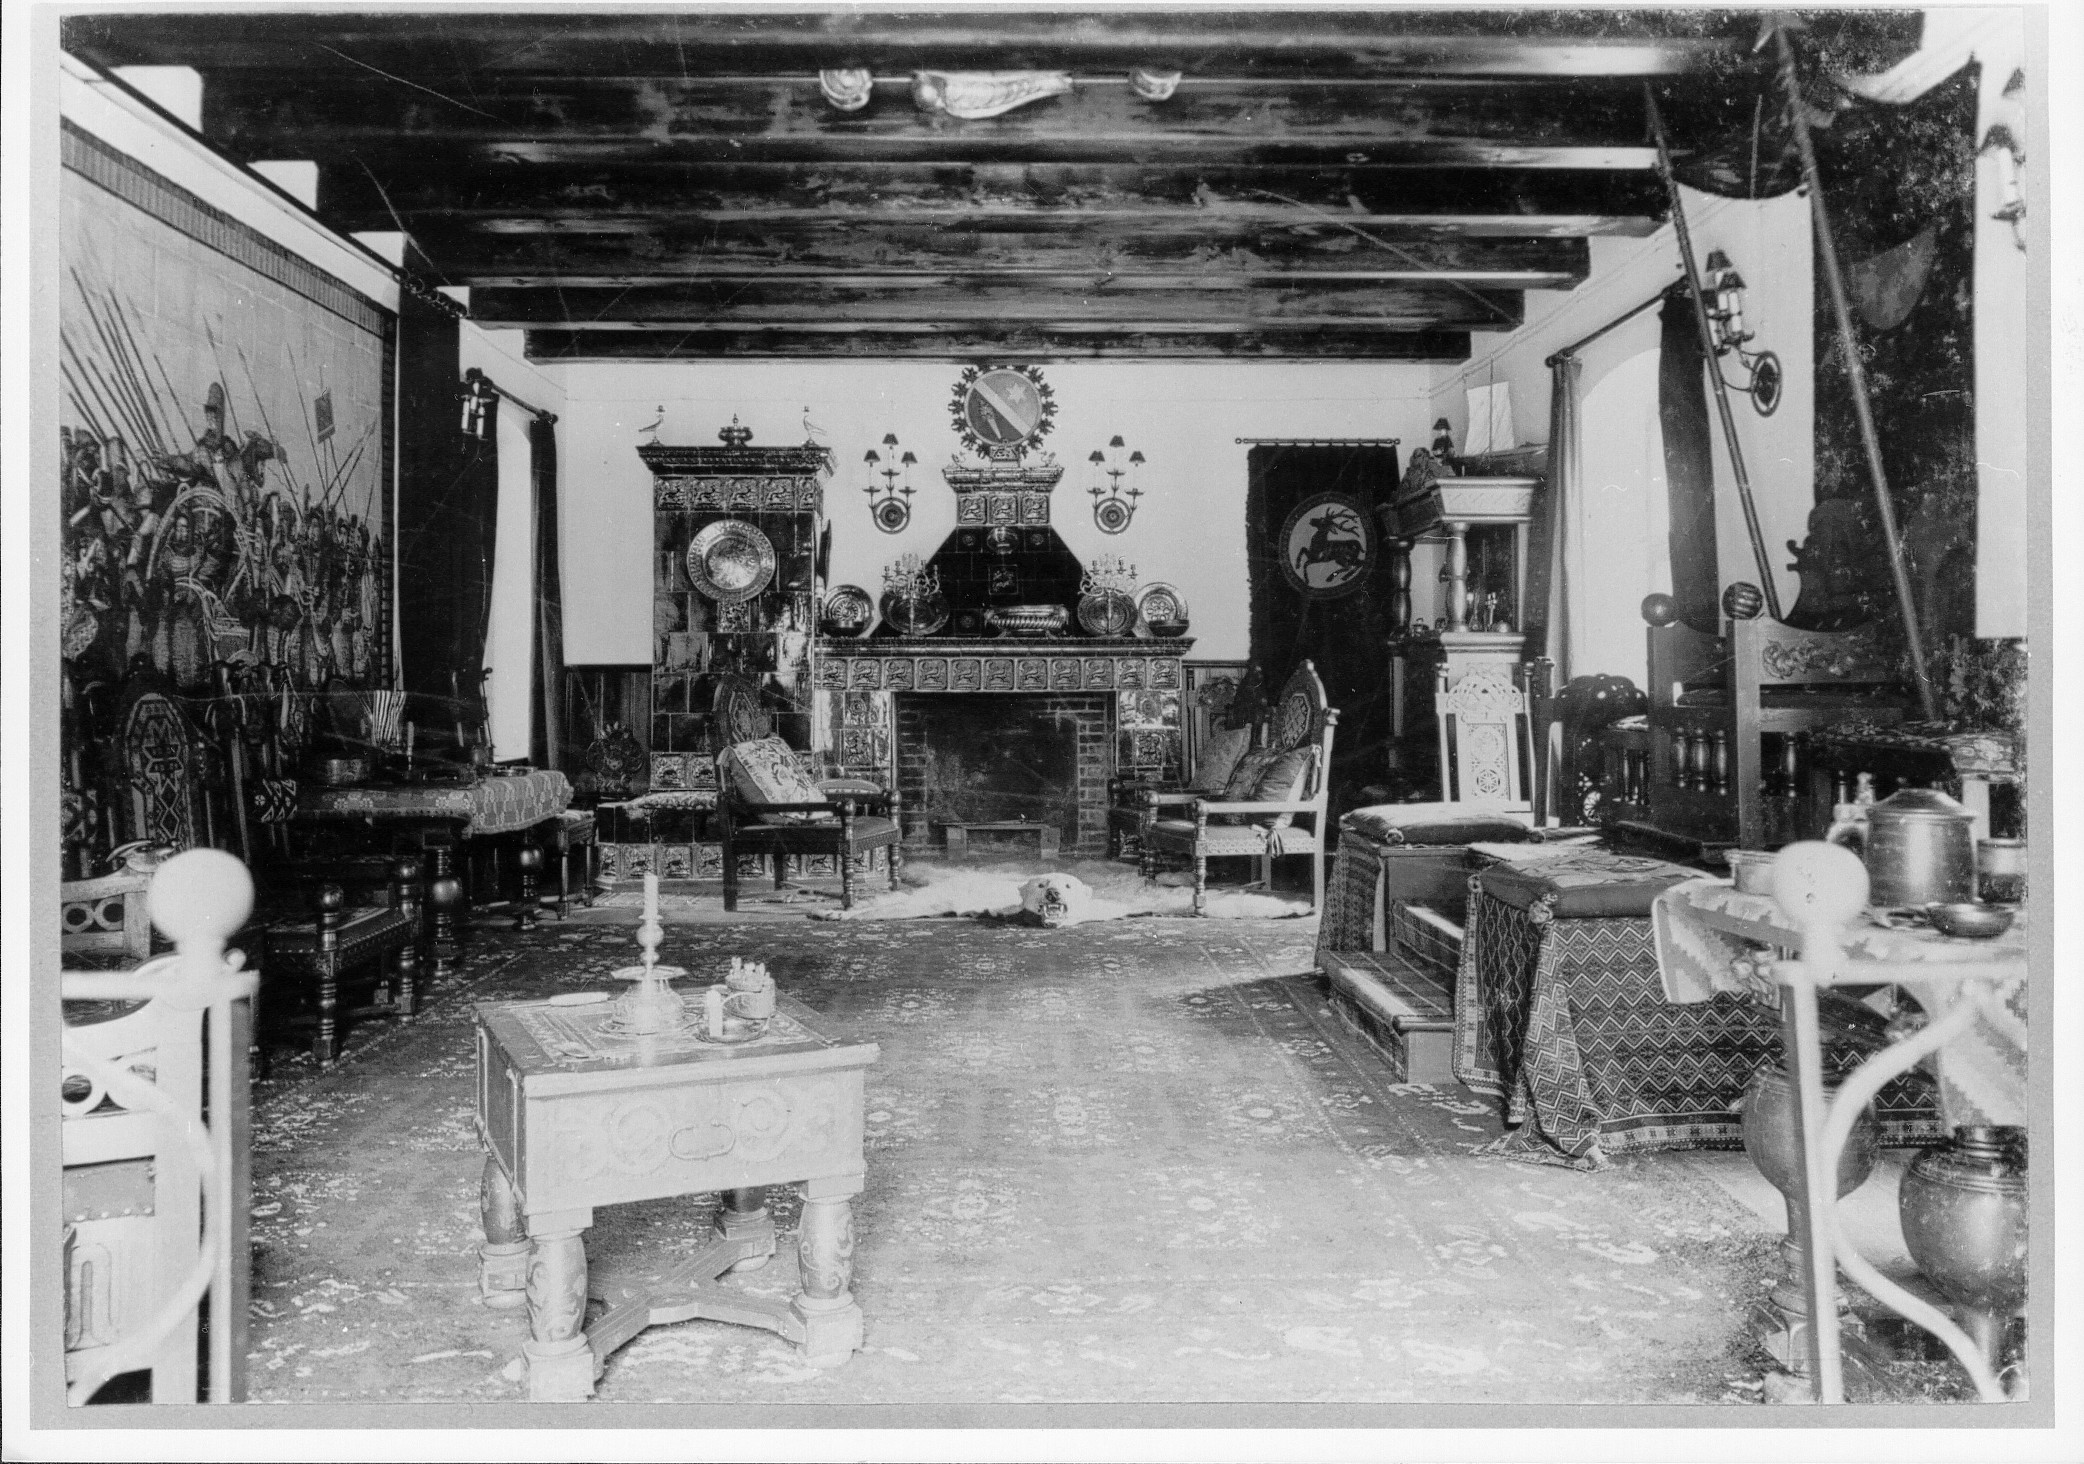 The tile painting in the armoury of Liebenberg Castle, around 1900, photograph (DKB STIFTUNG - Schloss & Gut Liebenberg, CC BY-NC-SA)